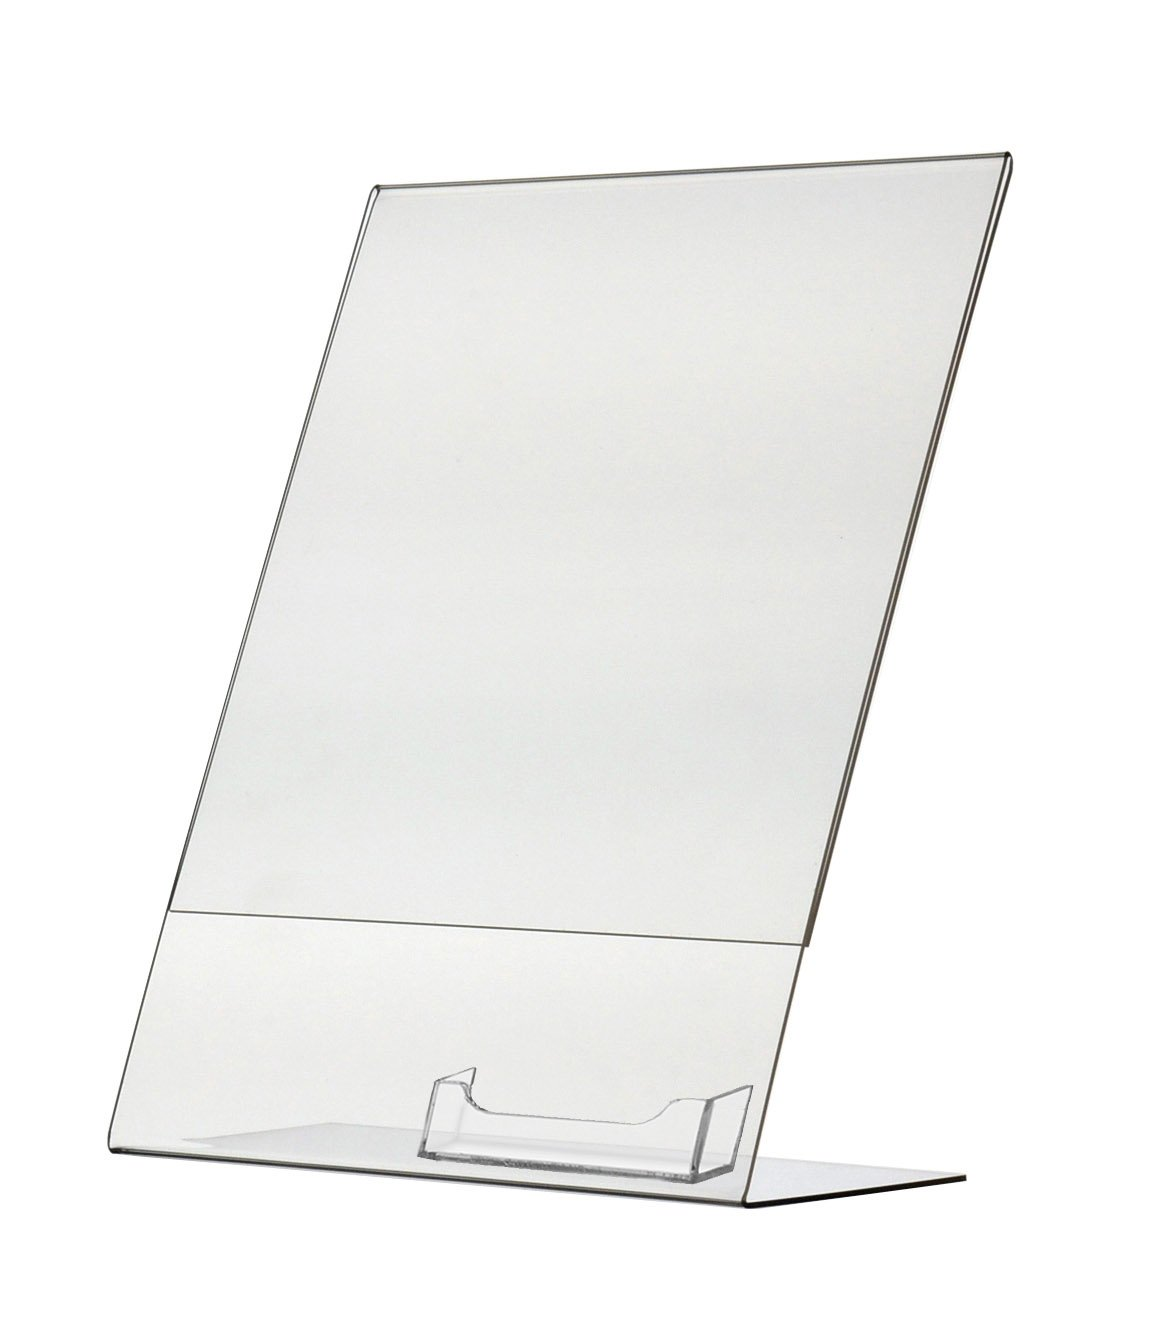 Marketing Holders Frame Ad Sign Brochure Literature Clear Acrylic Expo Shows Table Counter Display Stand Sold in Lots of 10 (4, 8.5''w x 11''h)